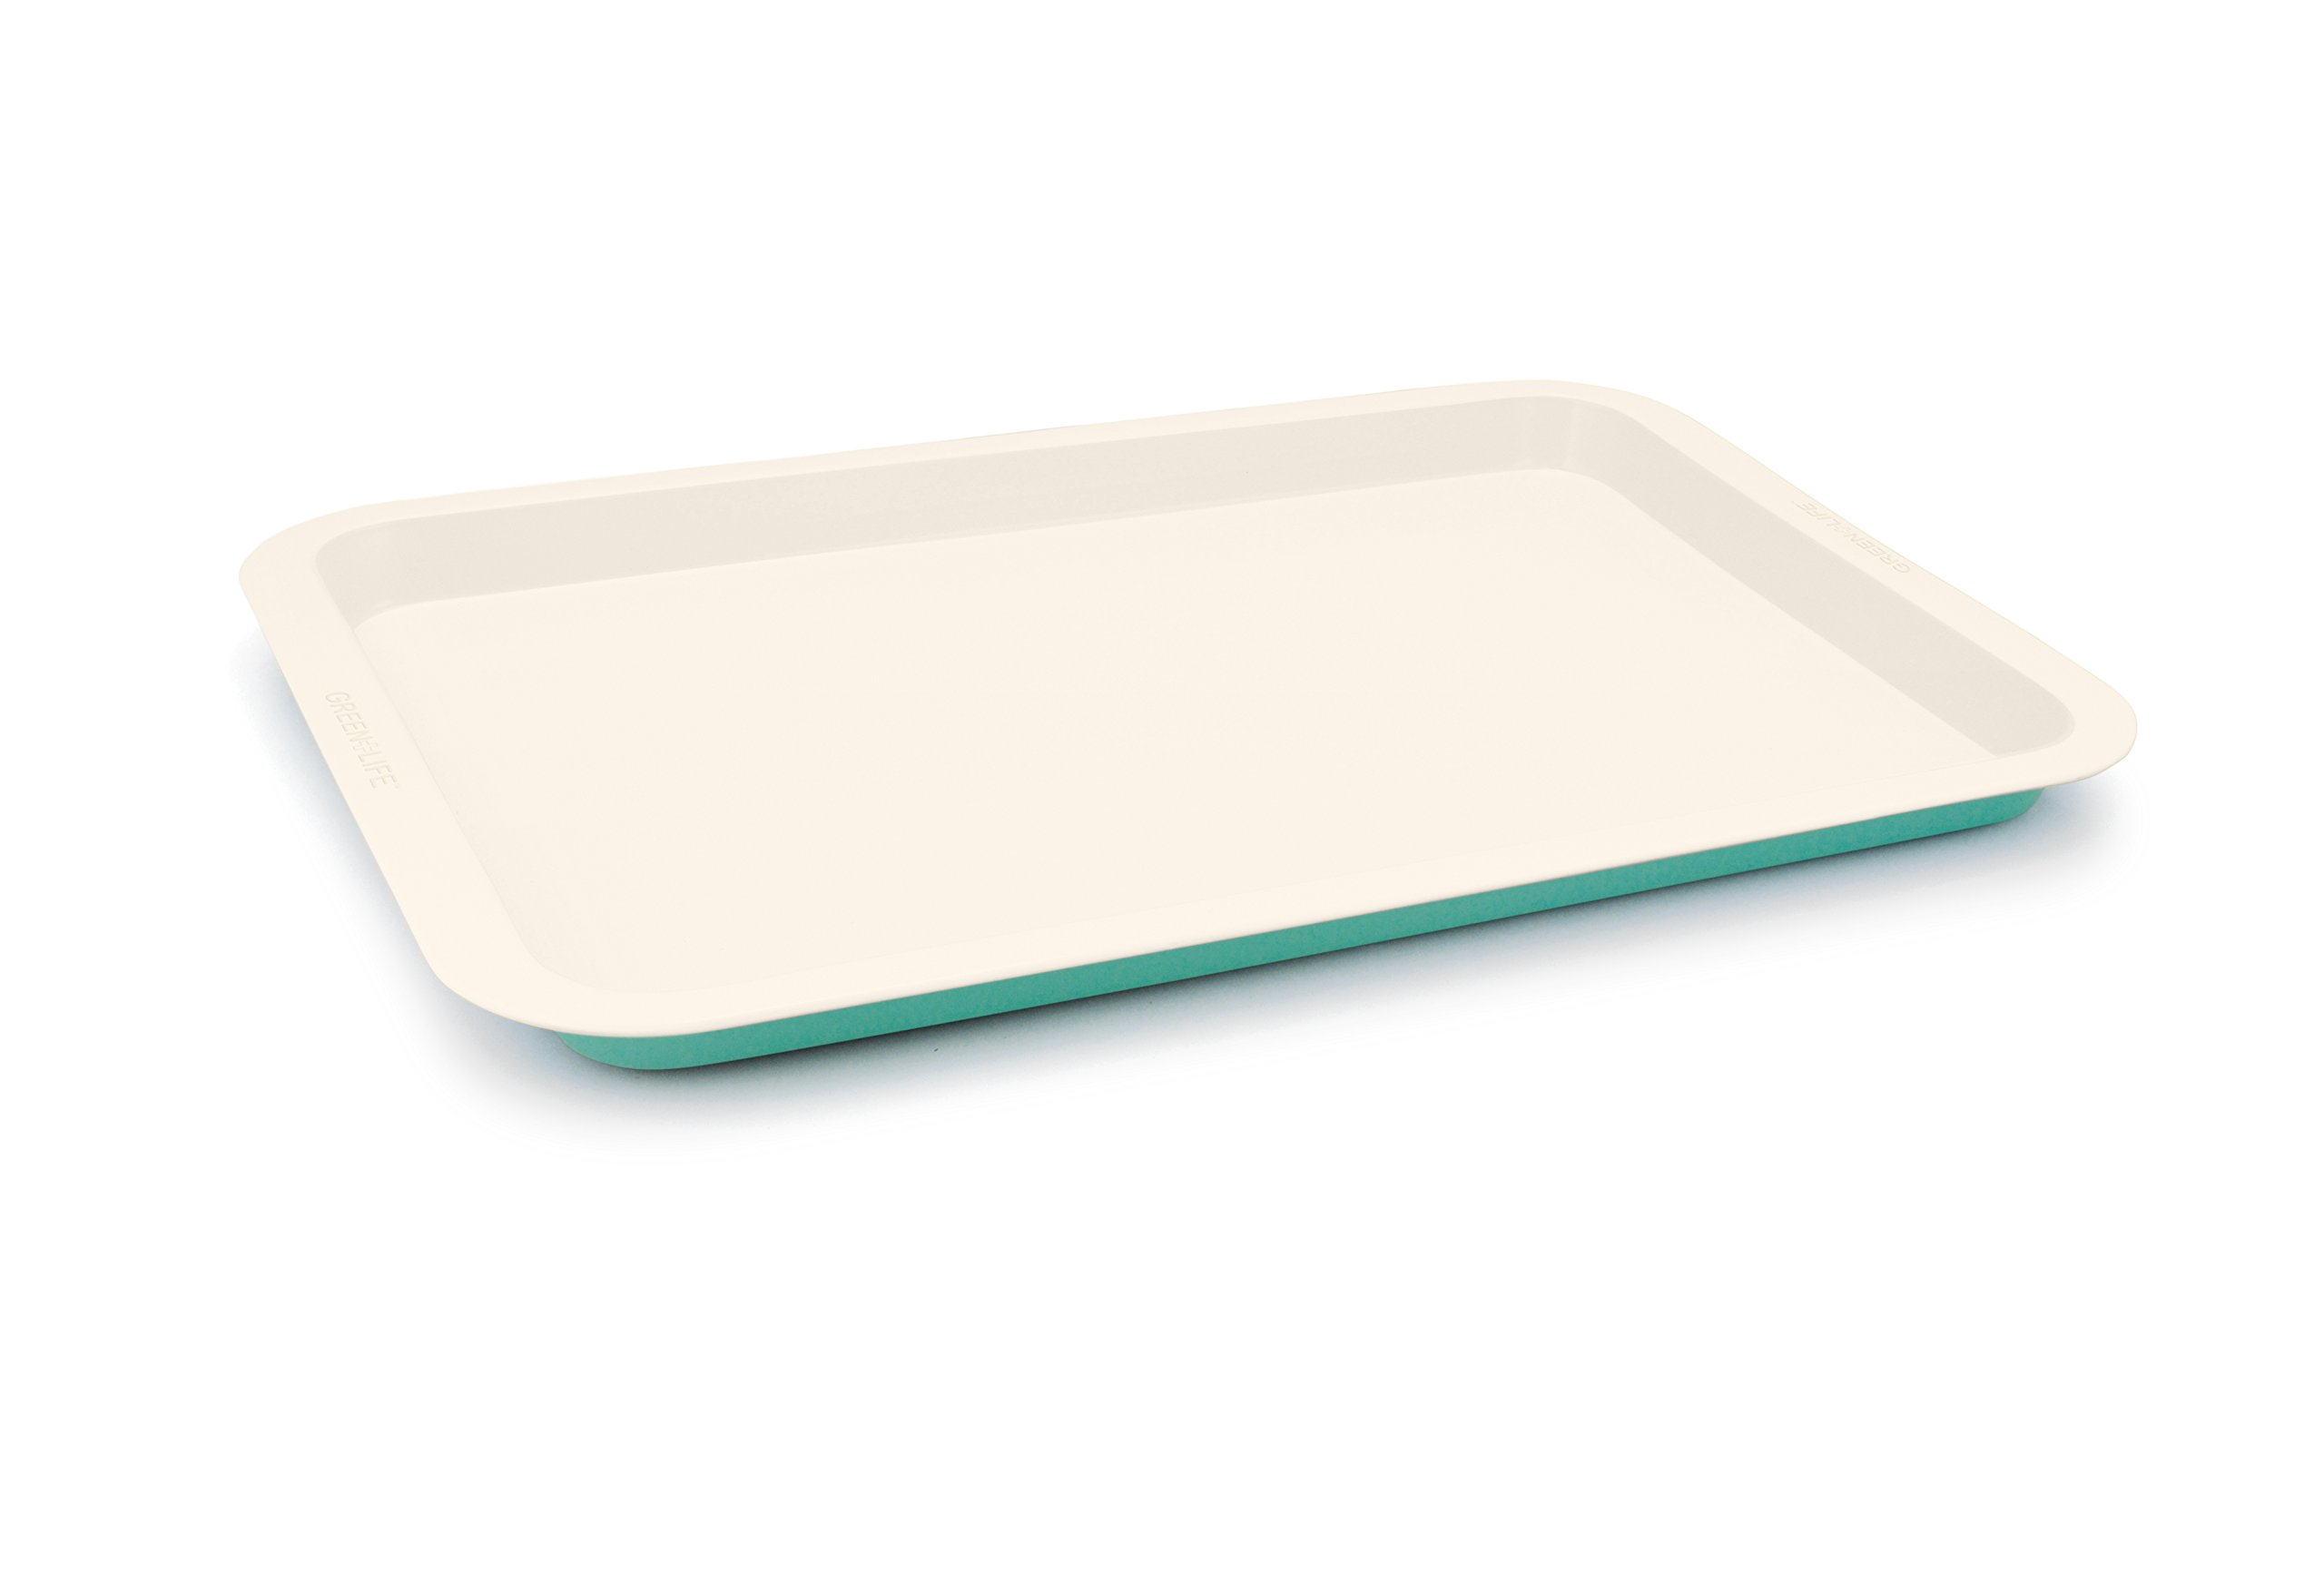 GreenLife Ceramic Non-Stick Cookie Sheet, Turquoise - BW000055-002 by GreenLife